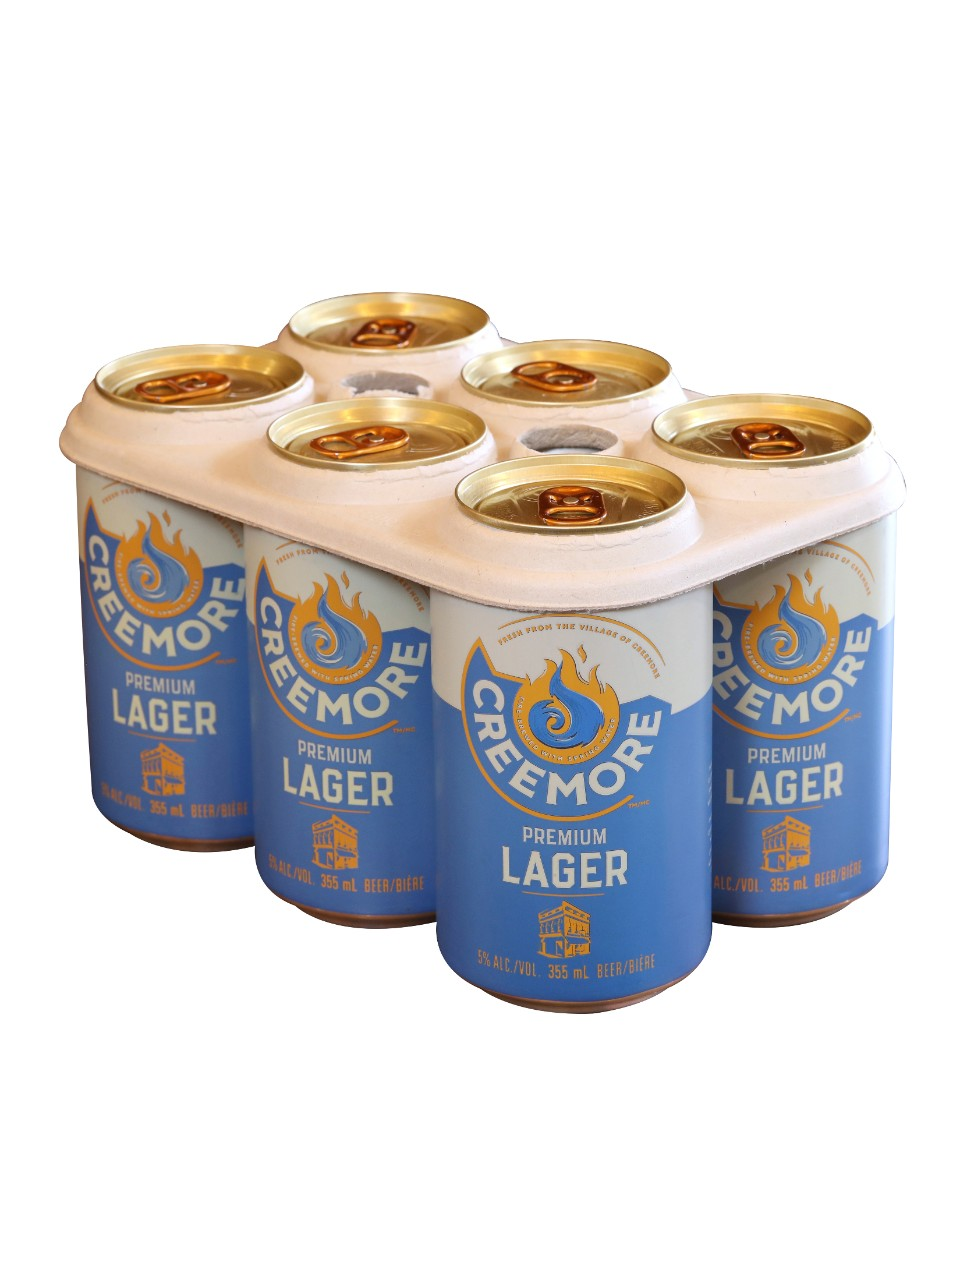 Creemore Springs Premium Lager from LCBO